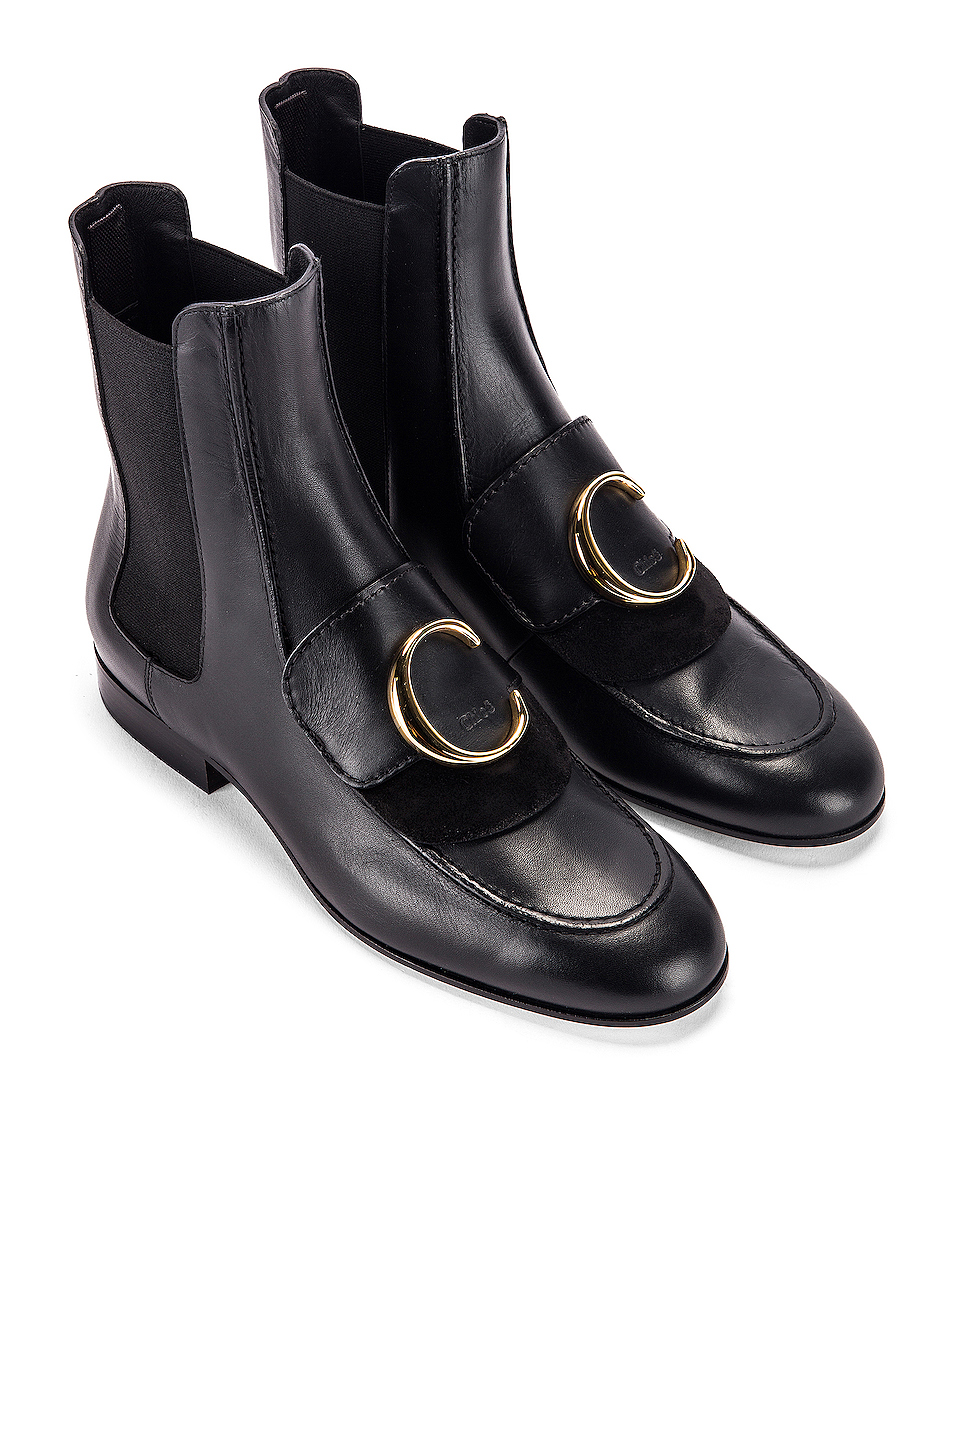 5f59962ae8 C Ankle Boots, Chloe